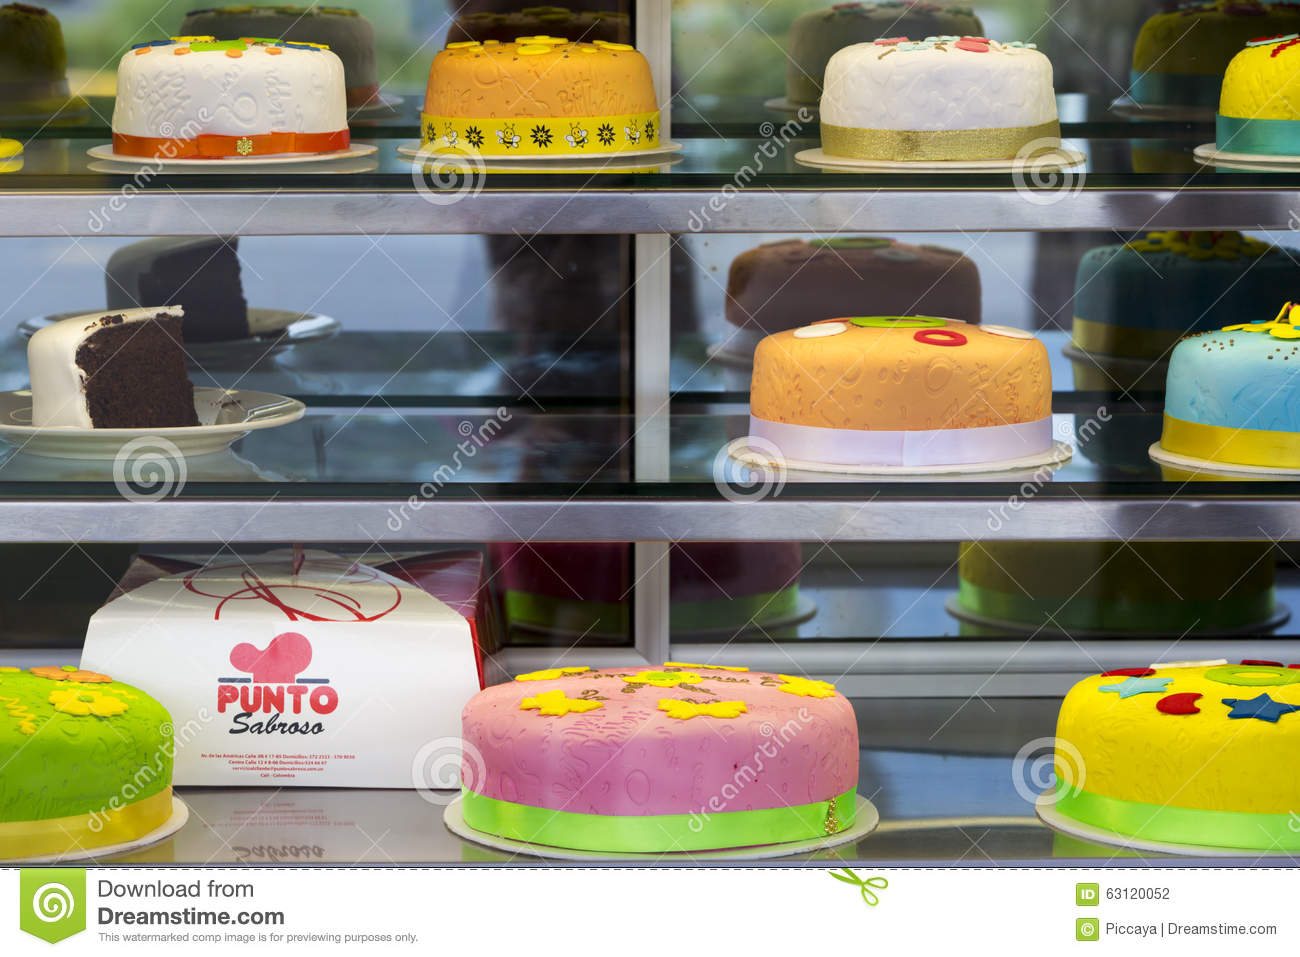 Colorful birthday cakes in Bogota, Colombia